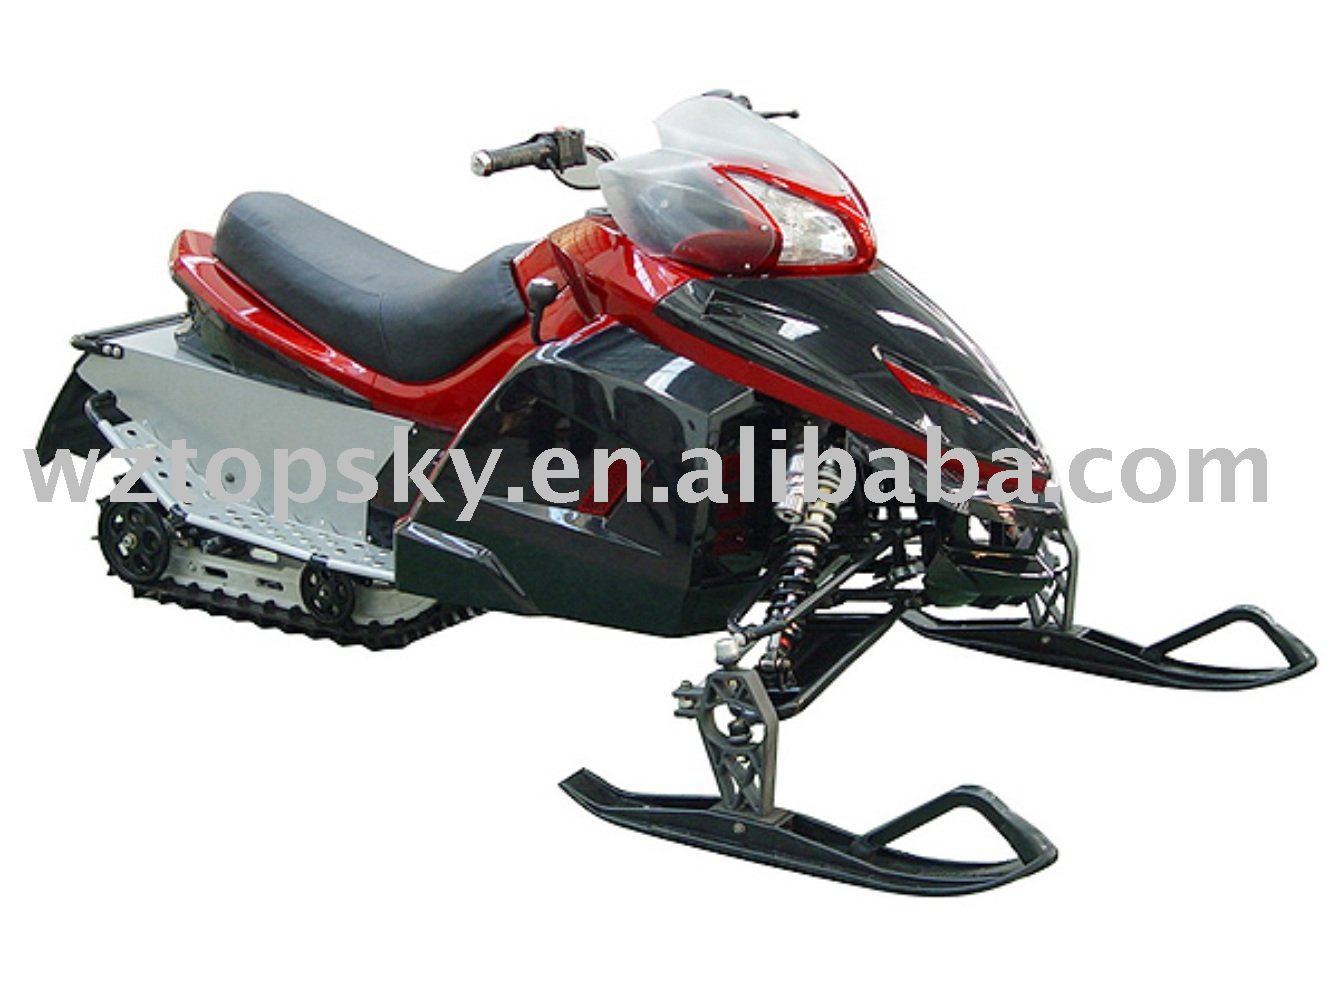 150cc Snow Scooter / Snow Mobile / Snow Motorcycle S150A